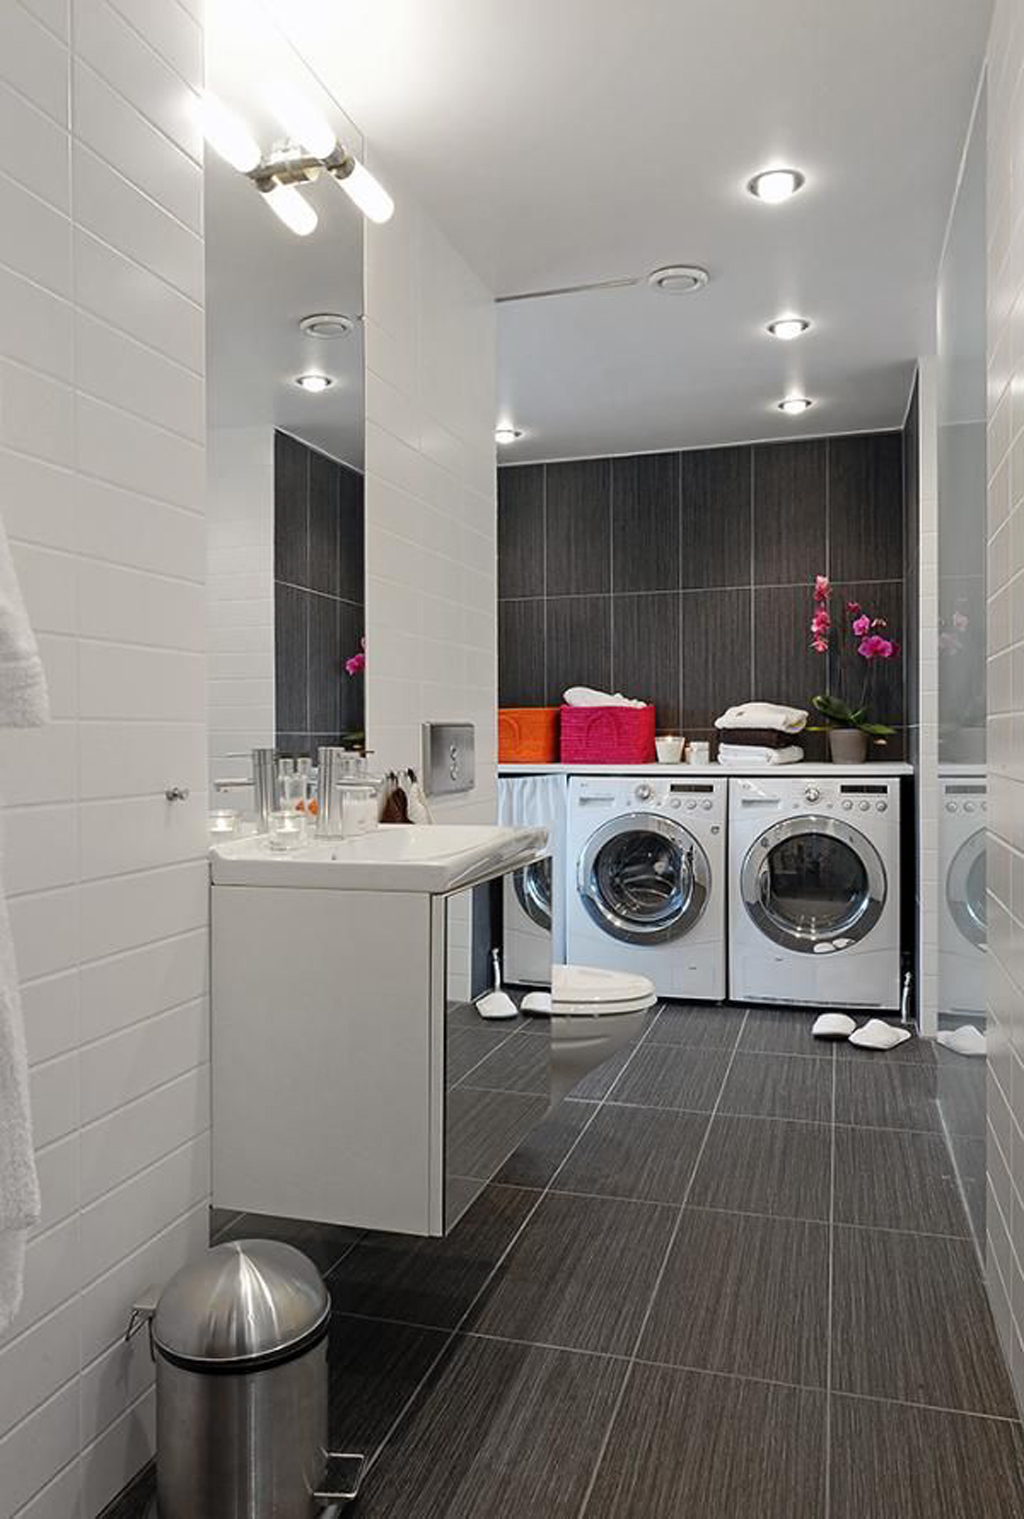 Bathroom Laundry Room Design Ideas ~ Integrated bathroom laundry room decor iroonie